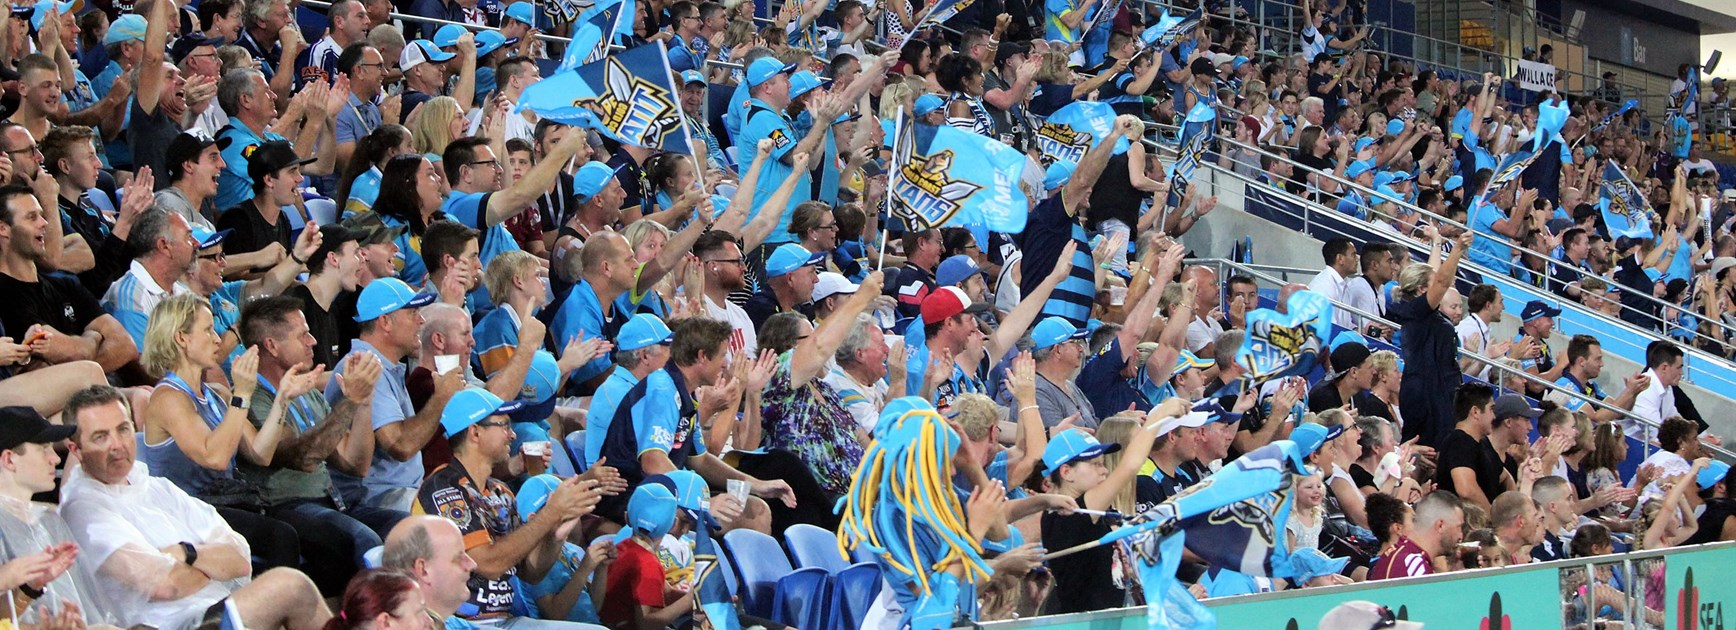 The fall and rise of the Gold Coast Titans